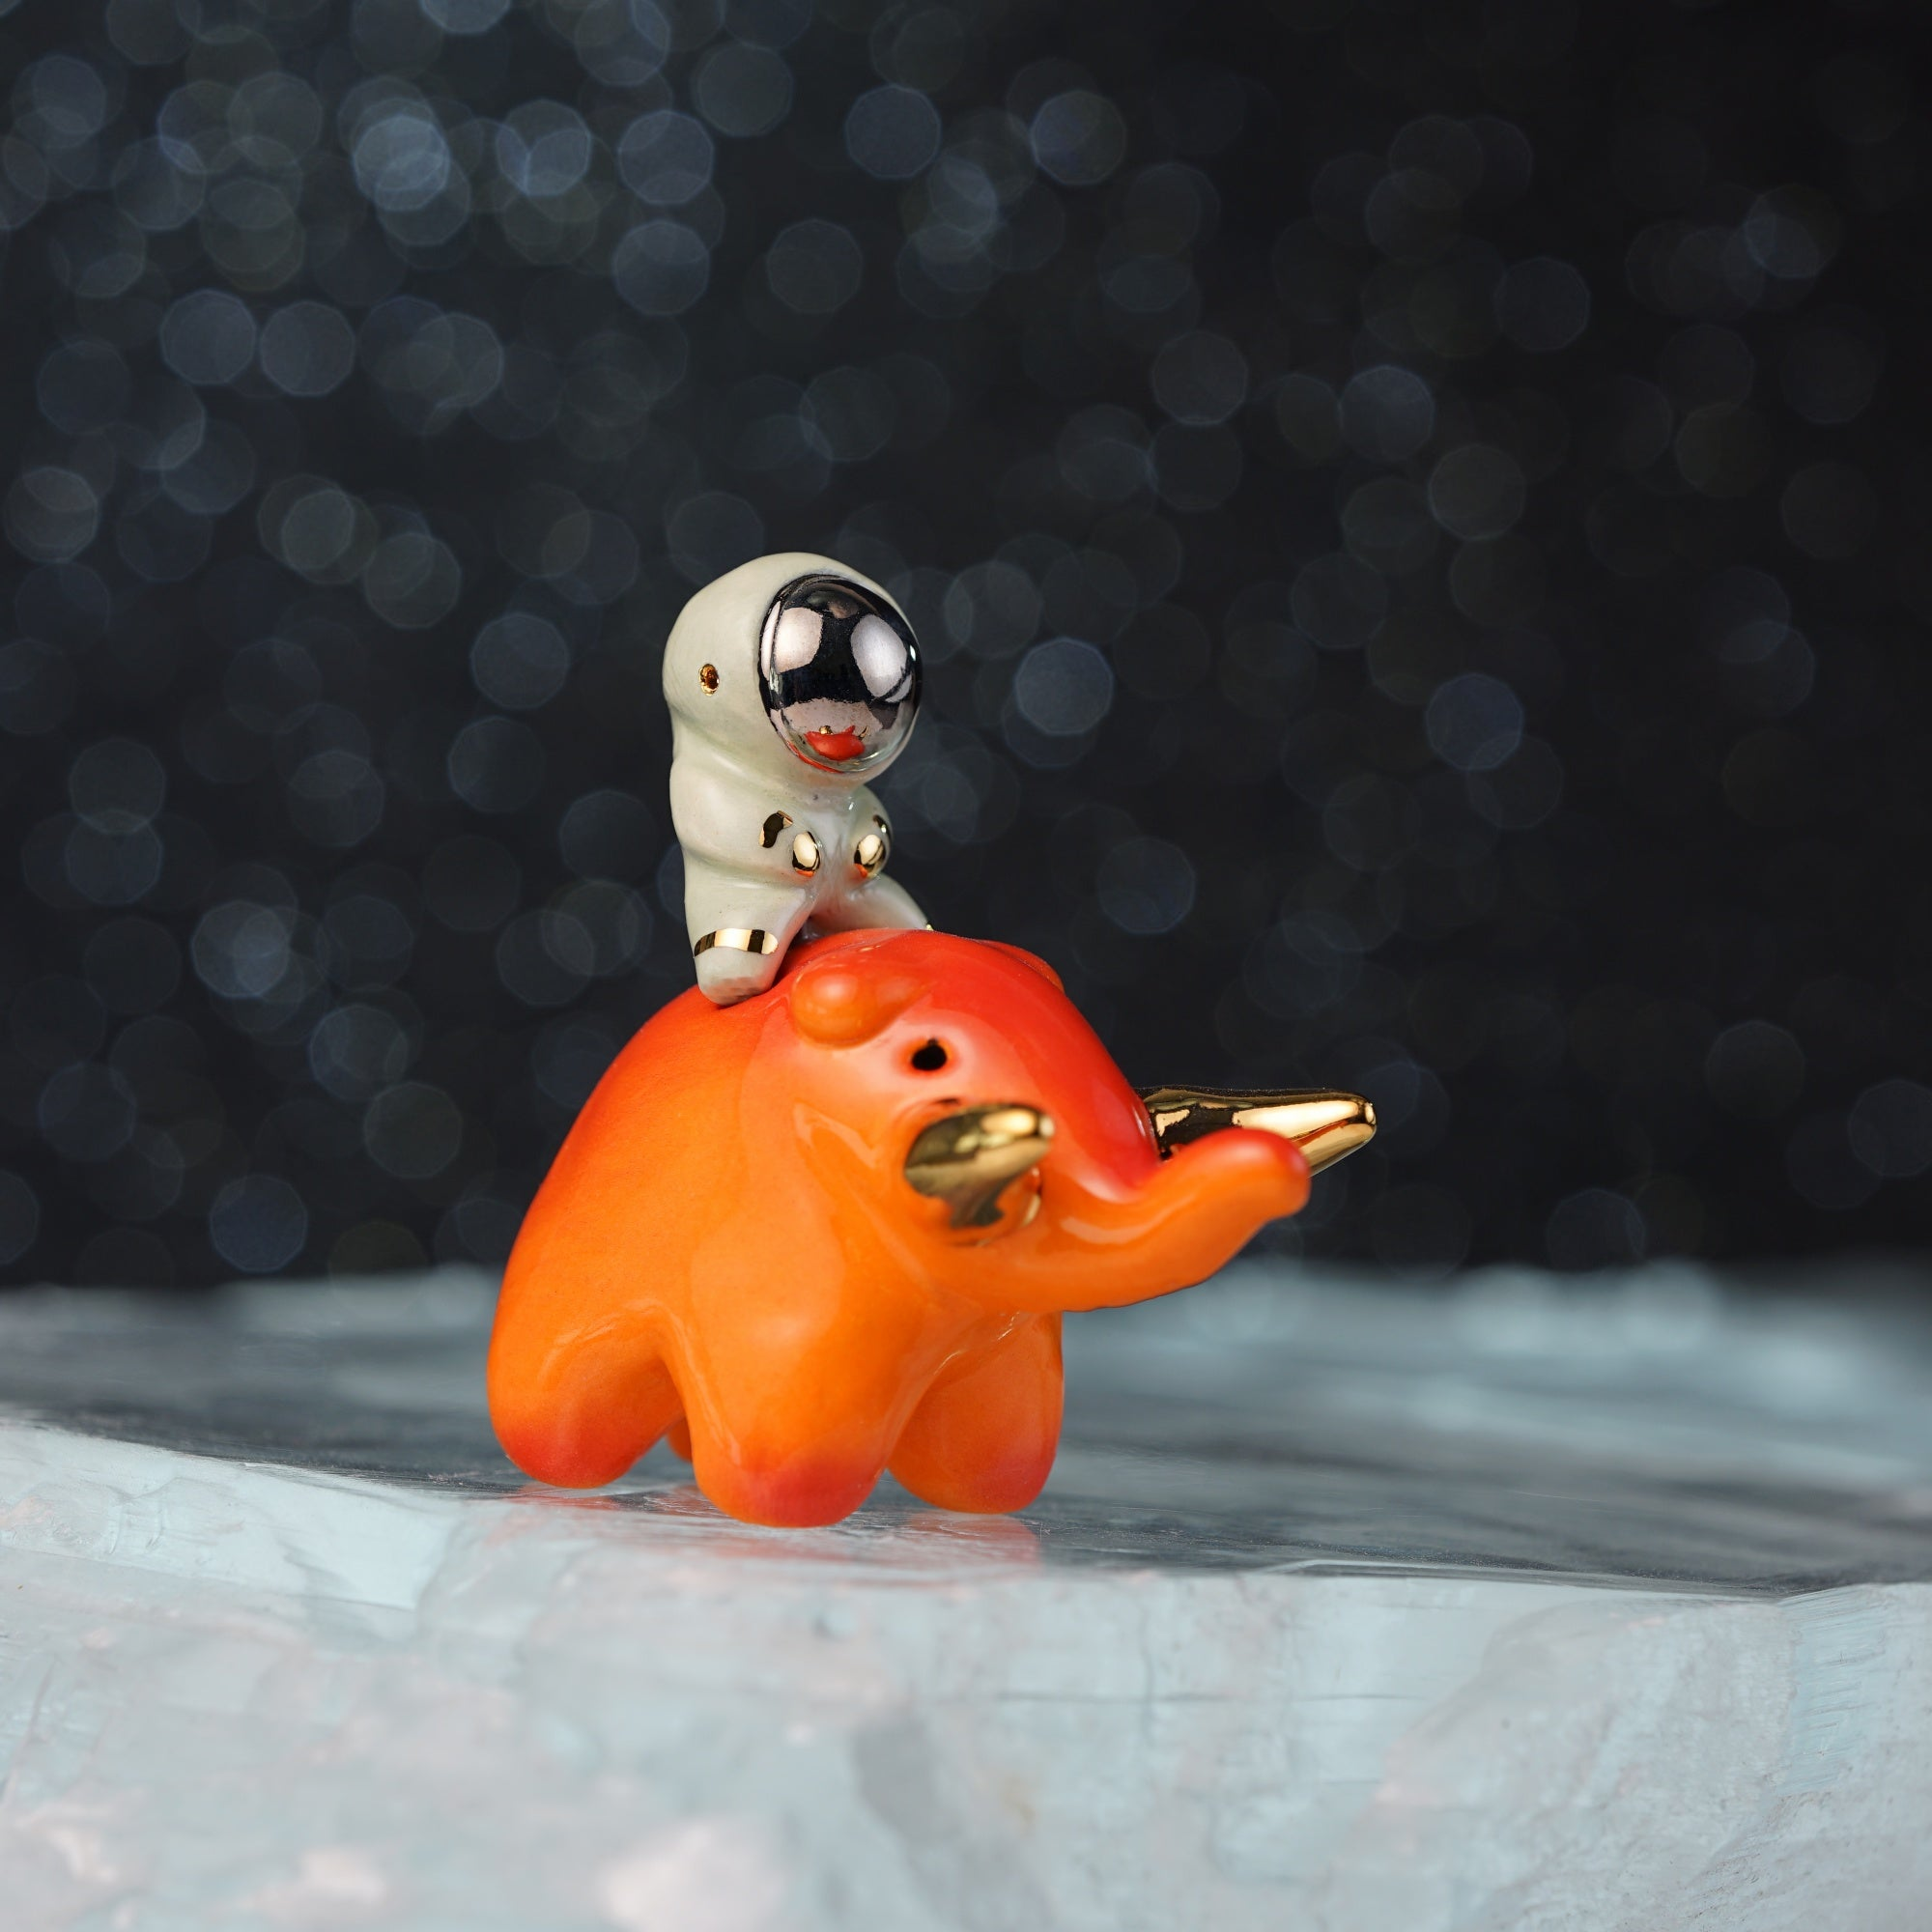 Astronaut Riding Mastodon Figurine